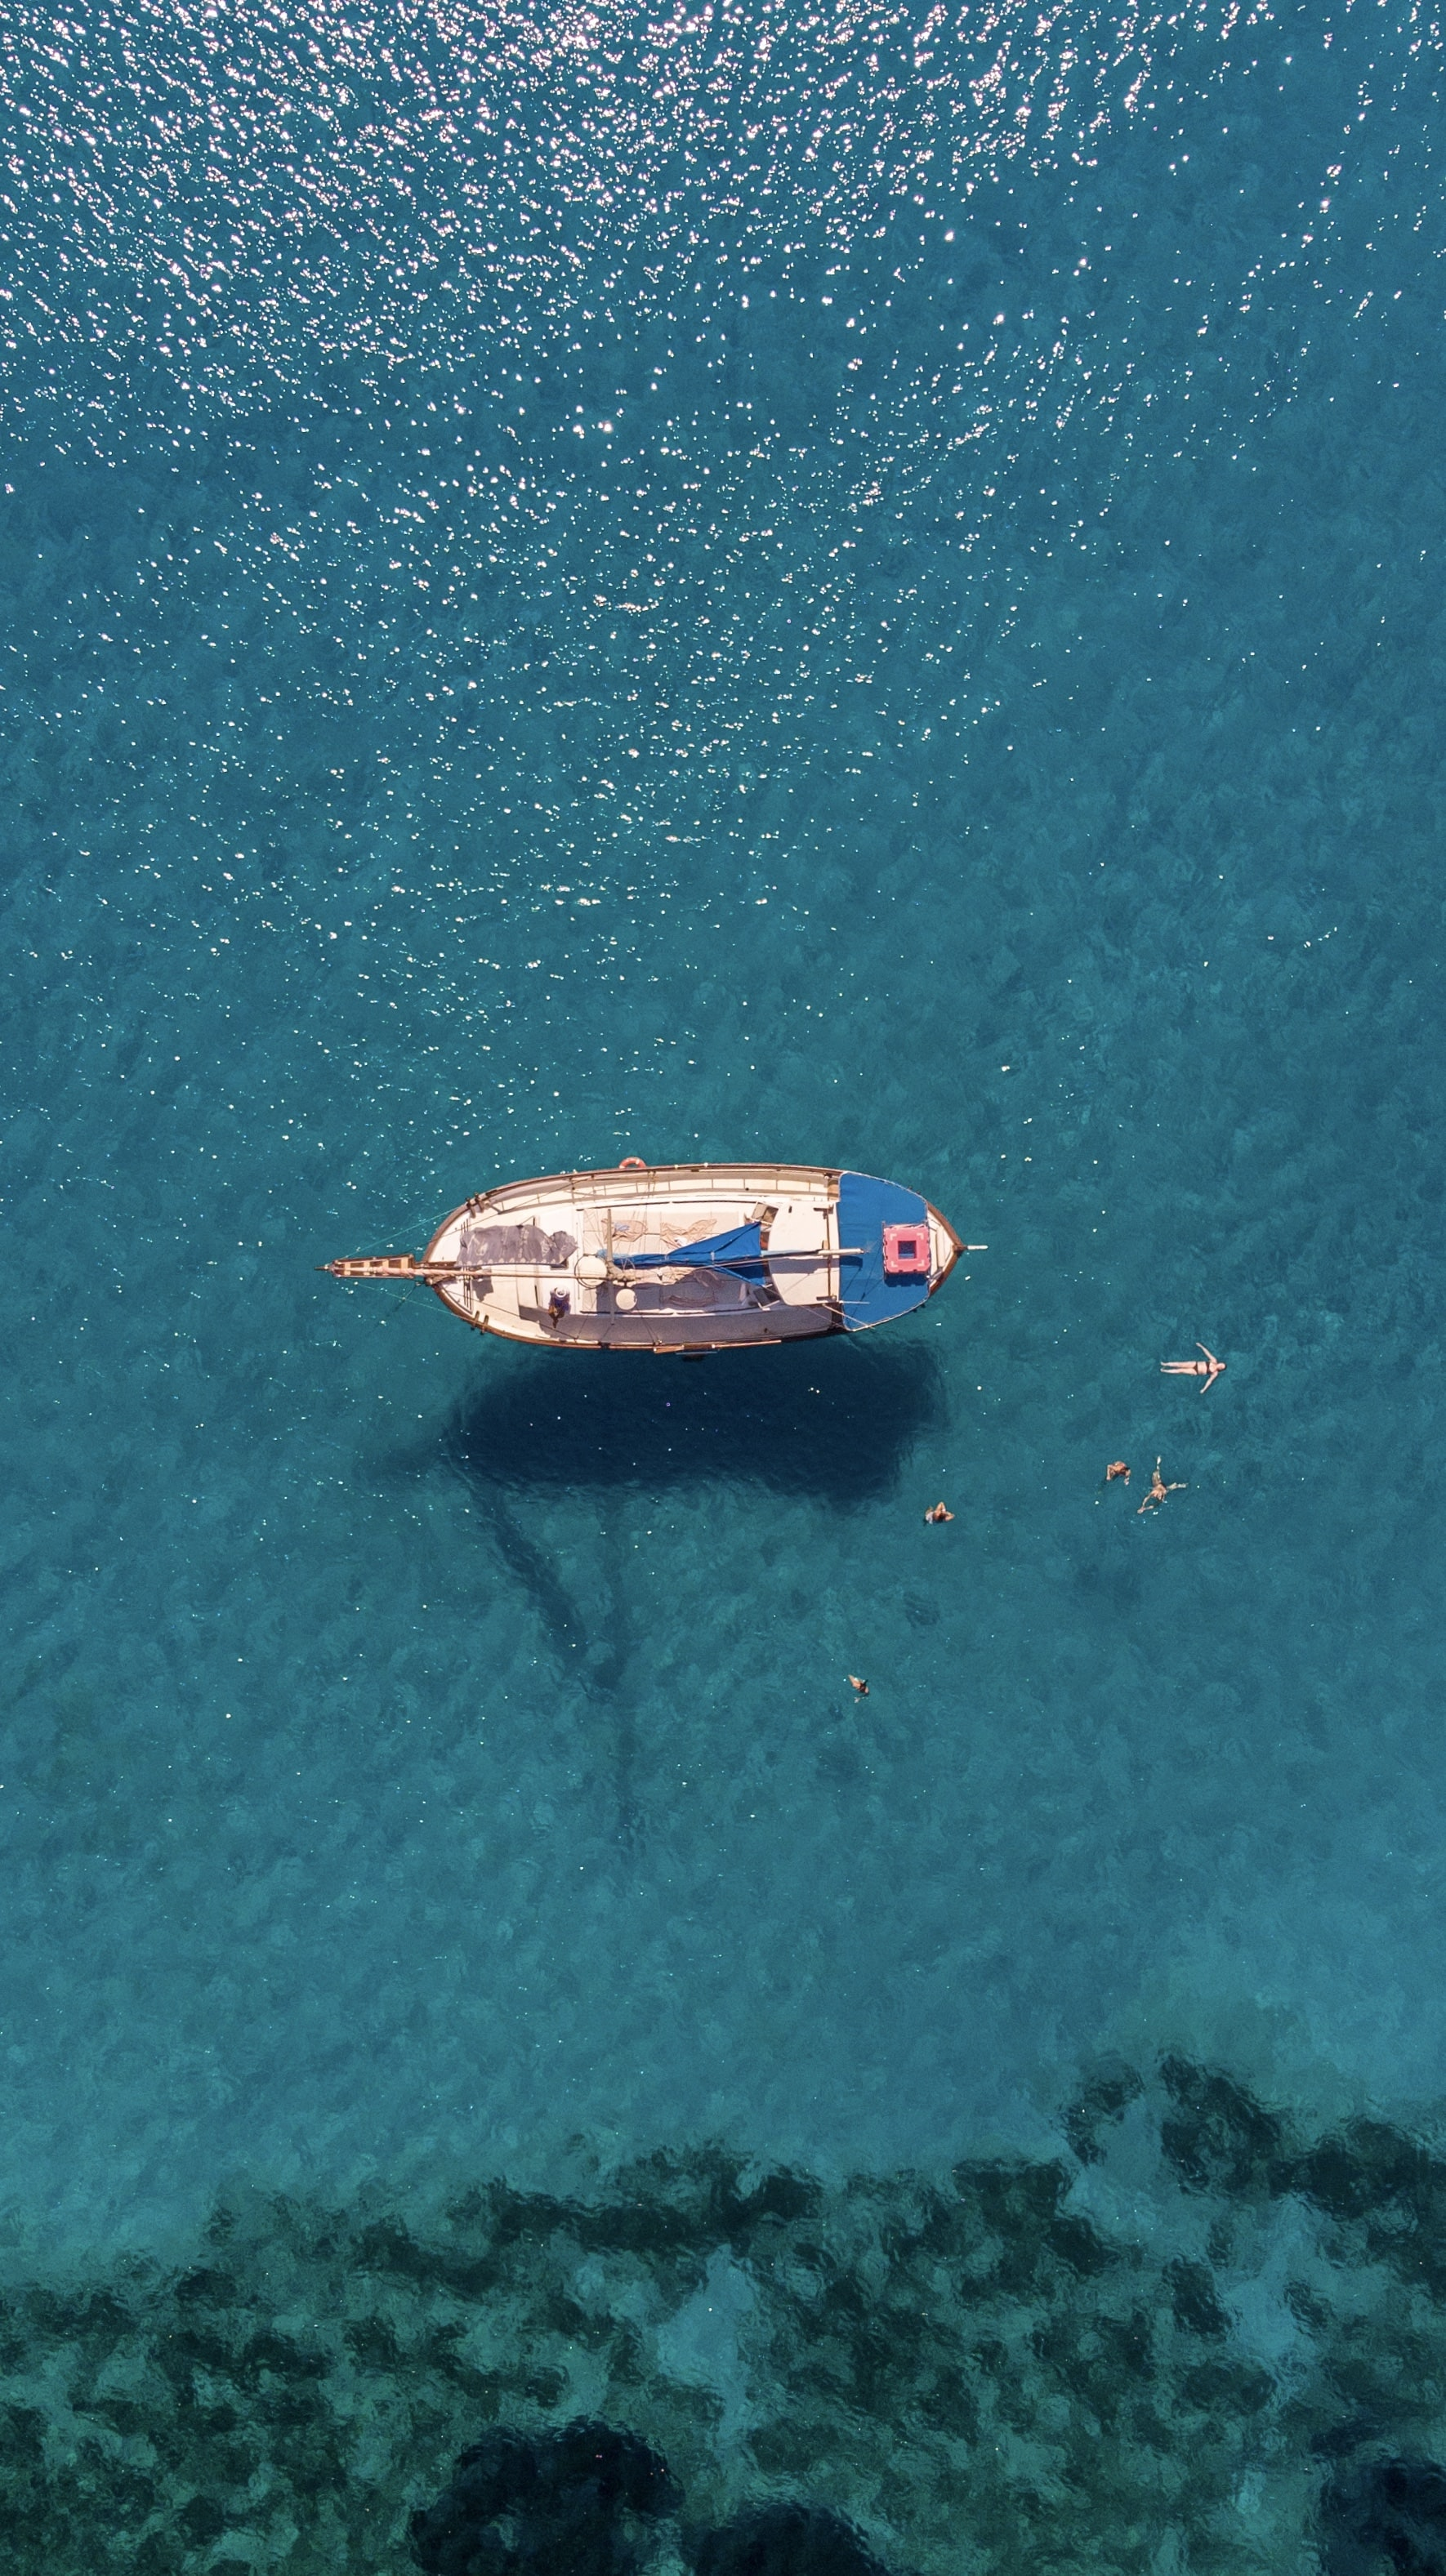 blue and white sailboat on body of water